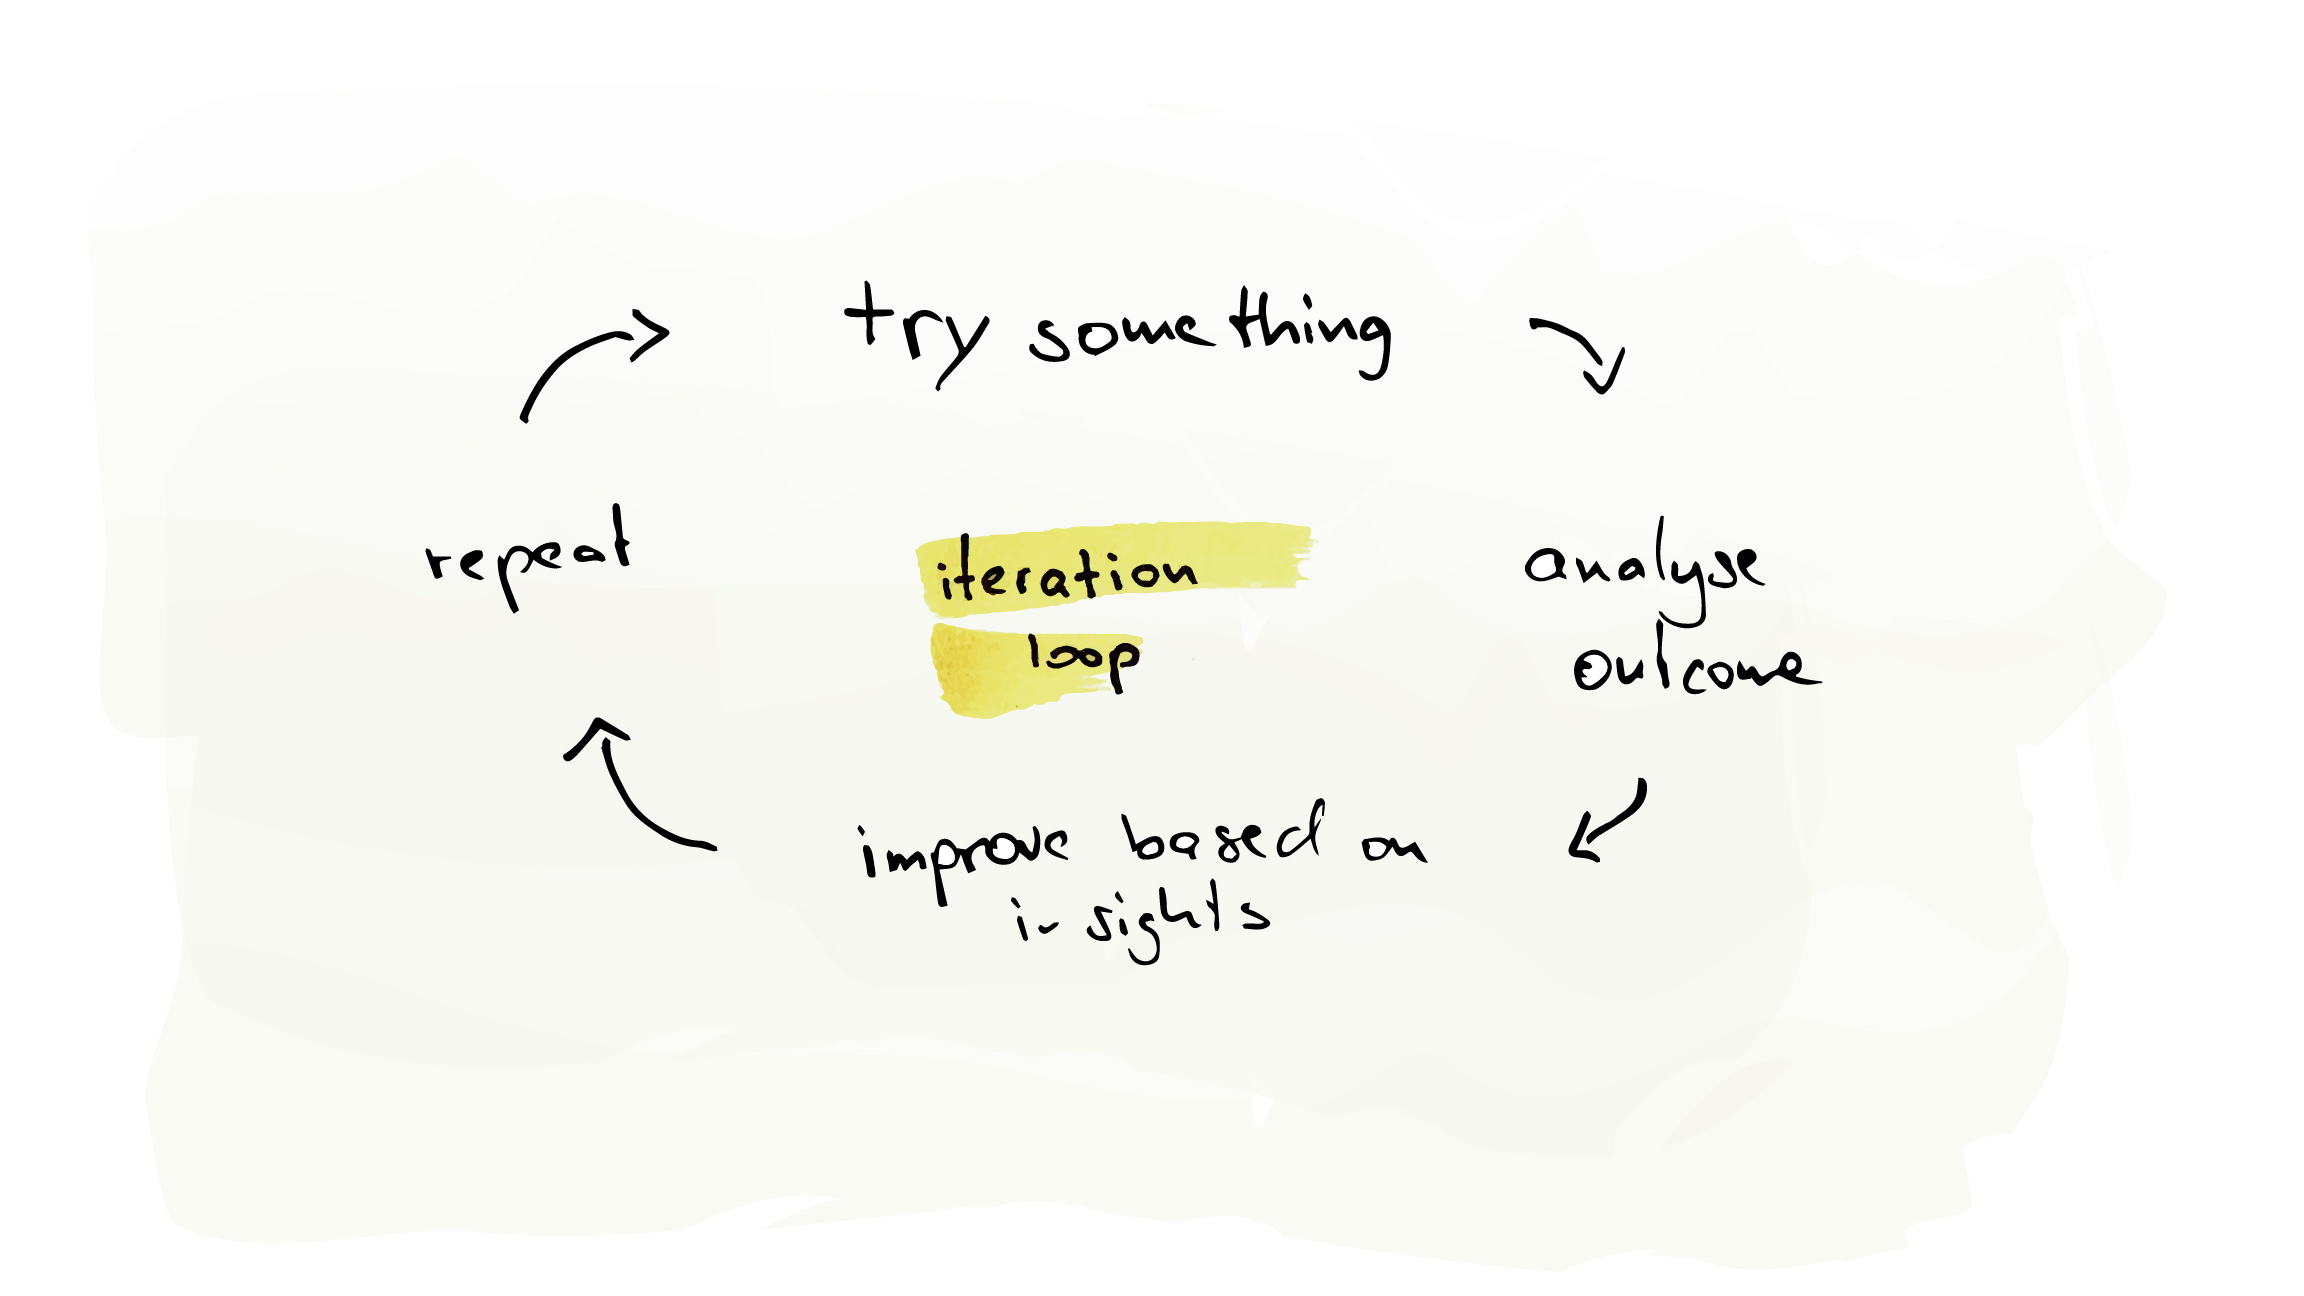 The Iteration Loop